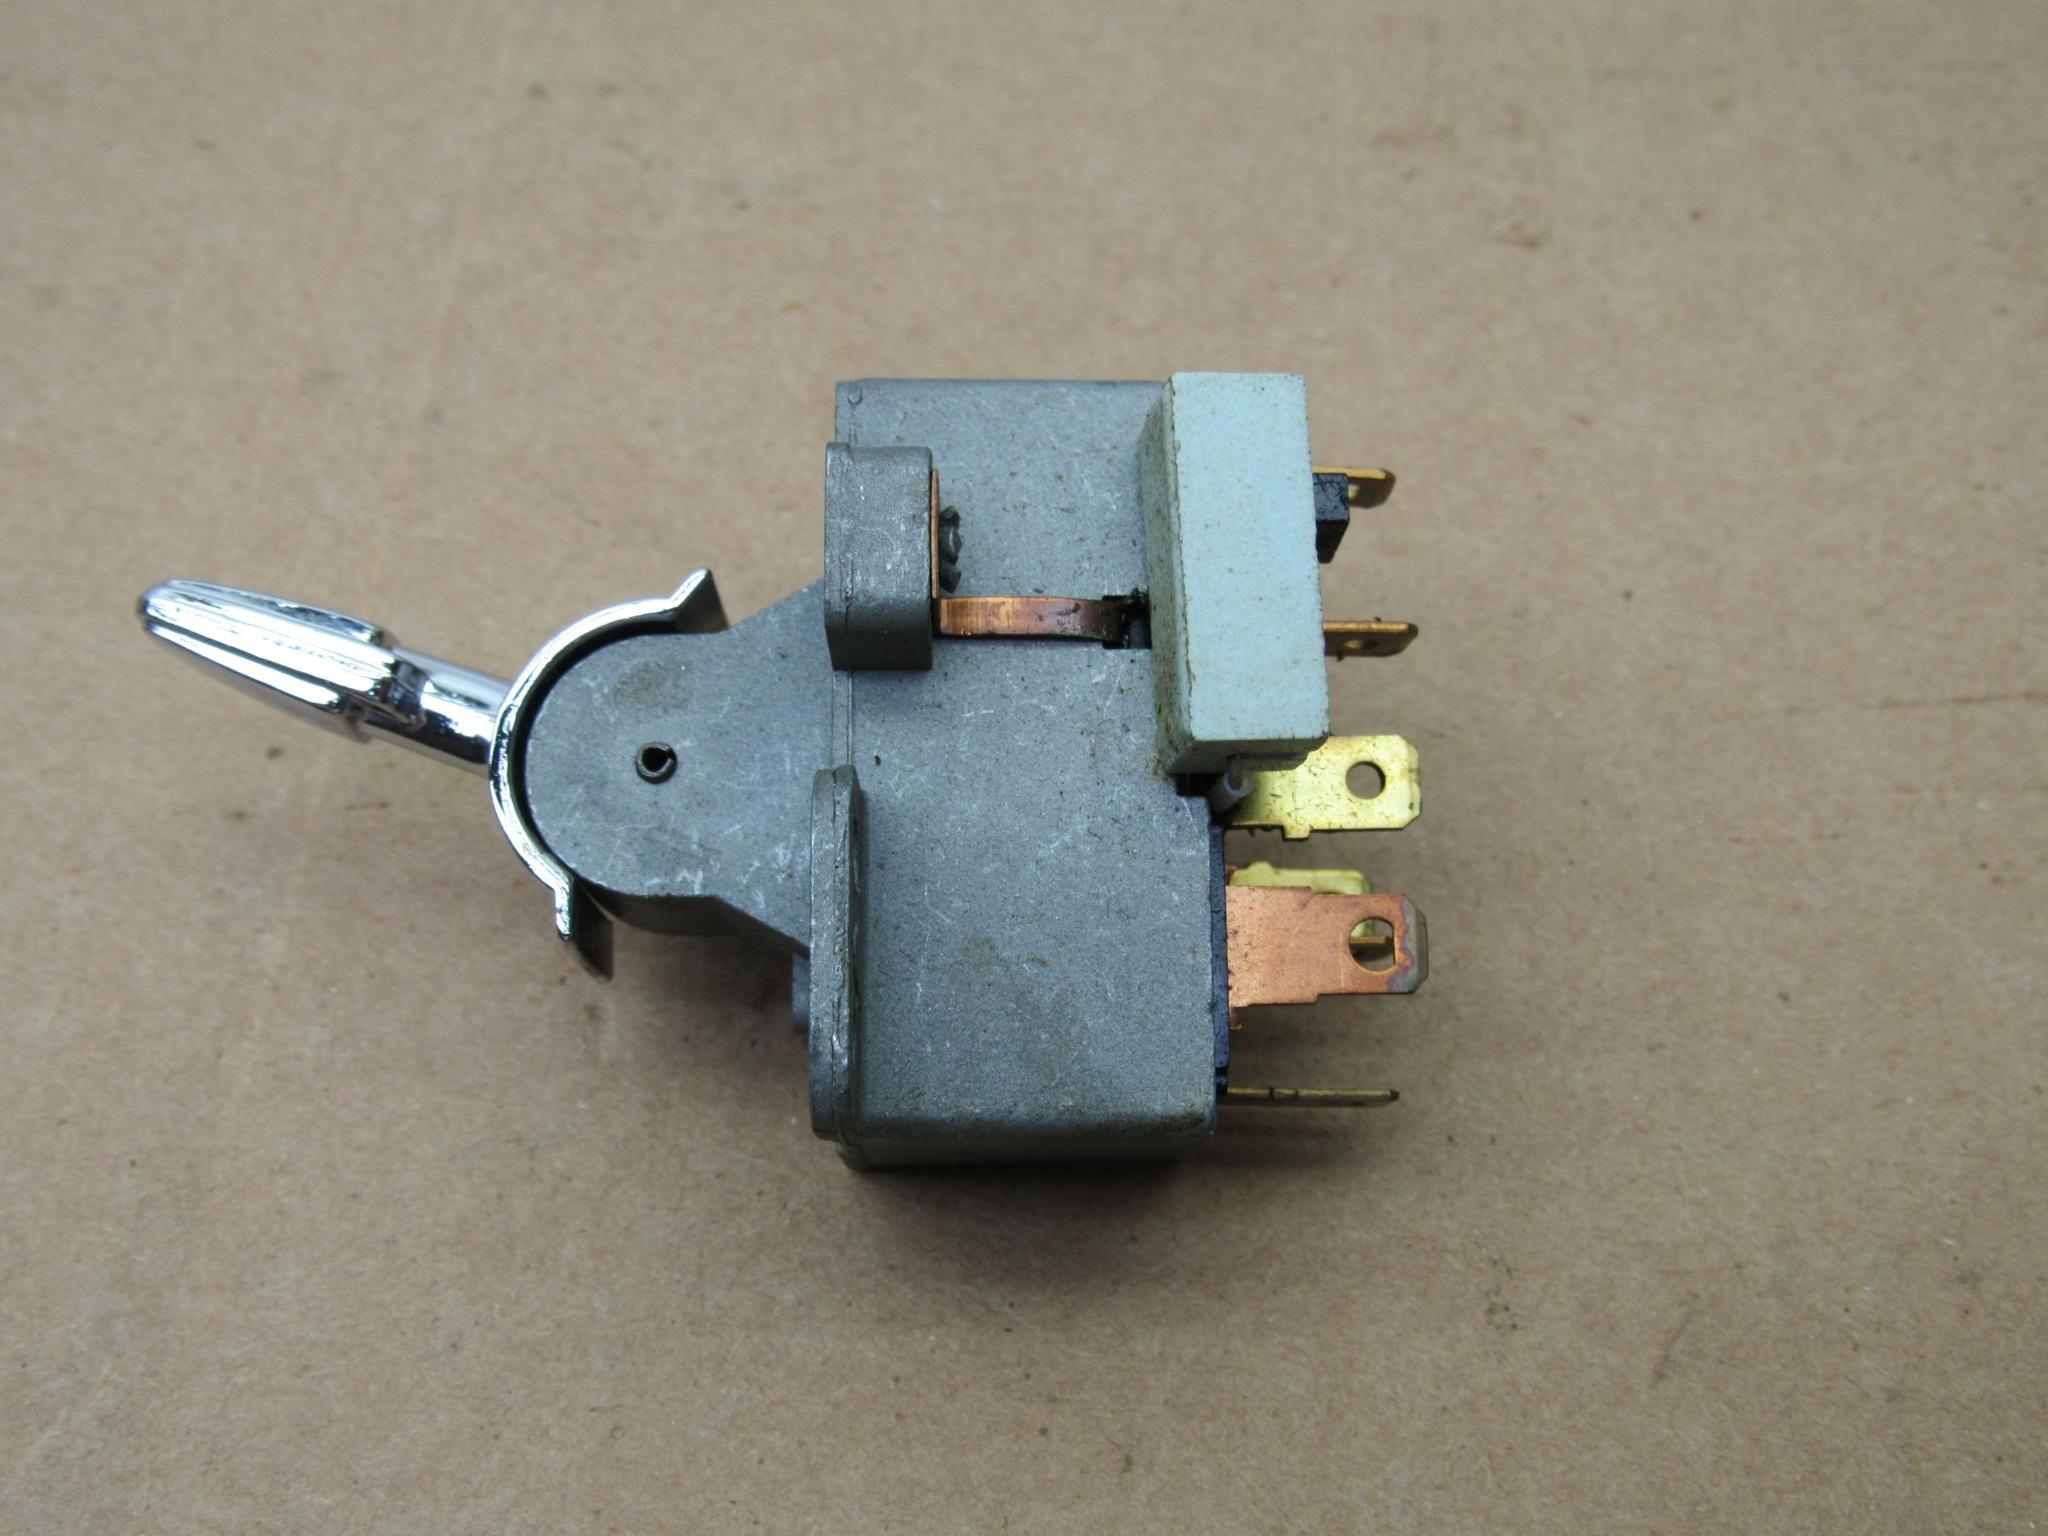 NOS 1968 Plymouth Fury 3 spd wiper switch # 2864186